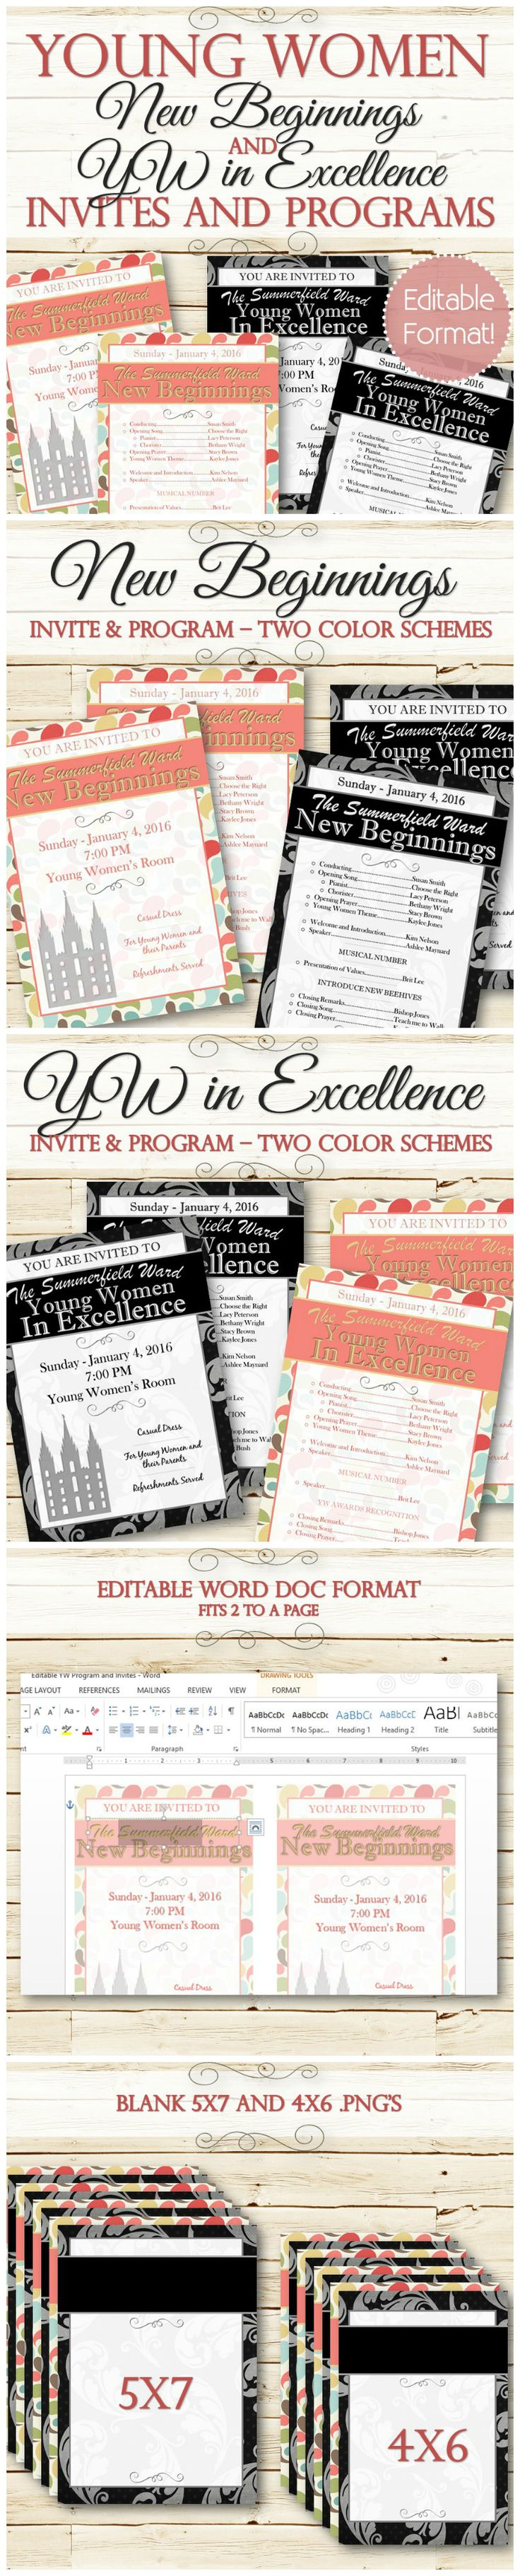 Editable Young Women invites and programs for New Beginnings and YW in Excellence! Now you can change the text, fonts, sizing, headers, etc. and print on your own! Two color schemes are included for each program invite and program. This comes in an editable .DOCX format where you can change the fonts, sizing, headers, titles, content, etc and blank 5x7's and 4x6's to create your own text layouts. Quick and easy!